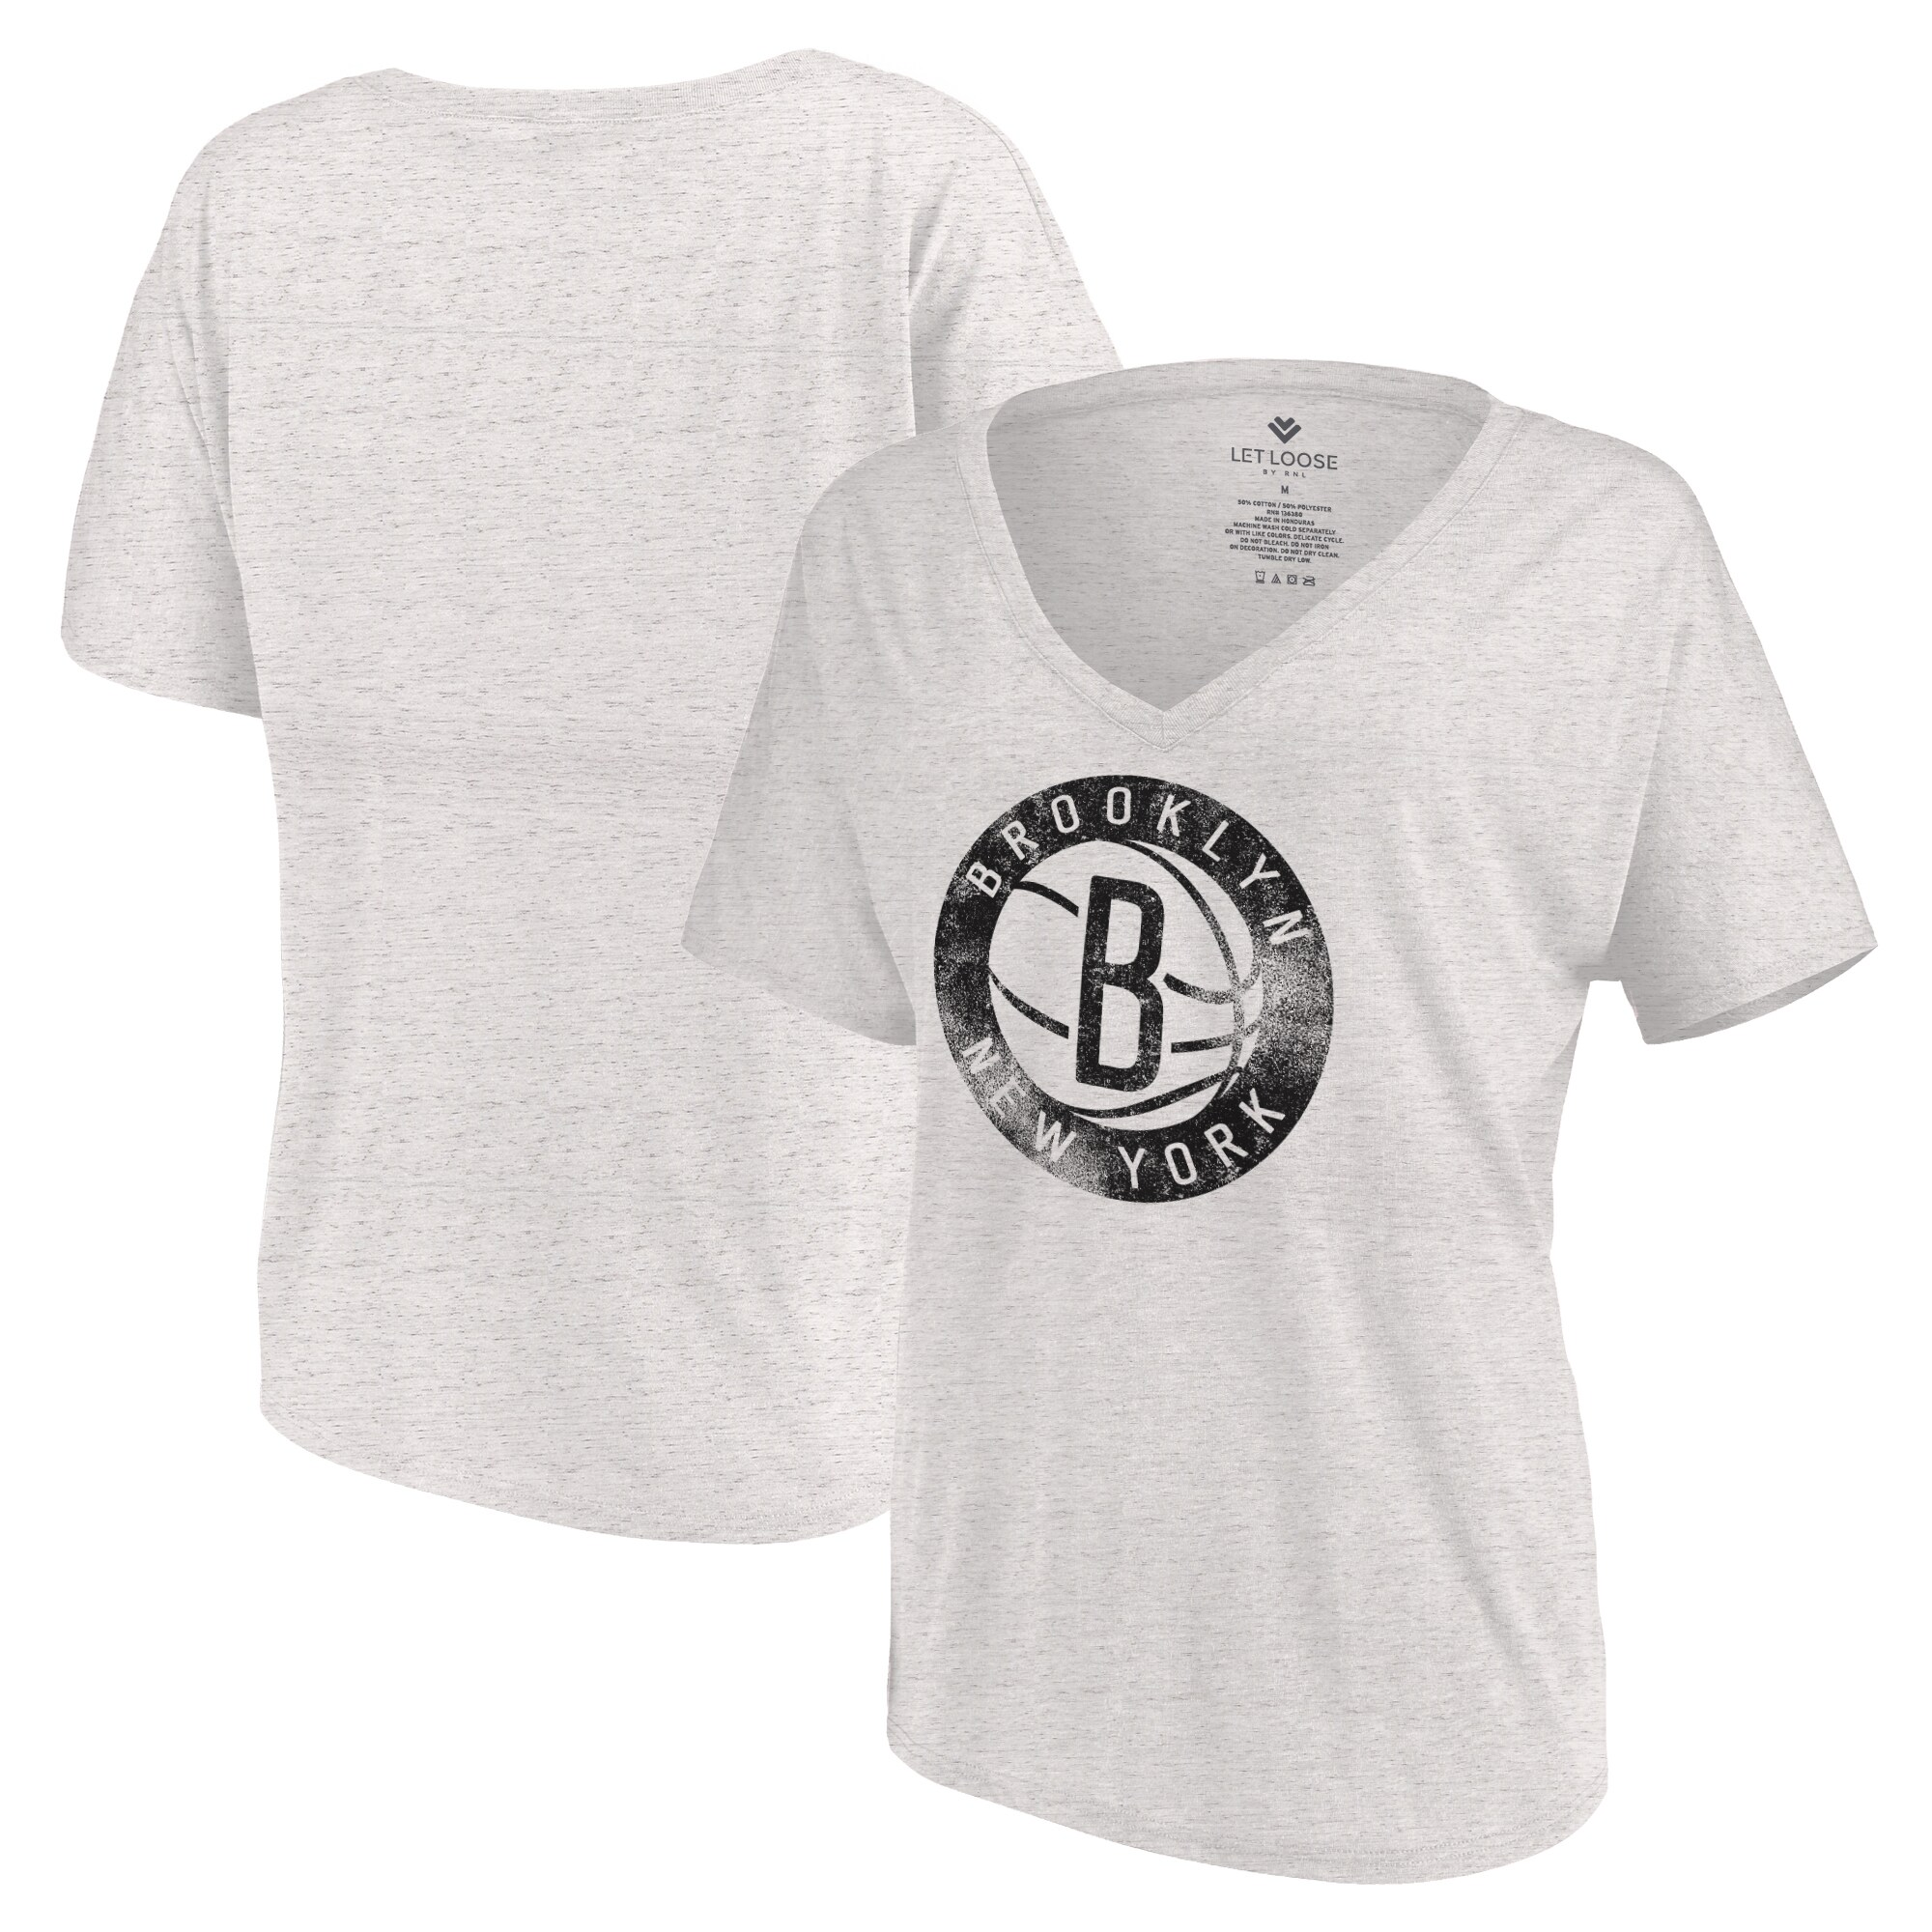 Brooklyn Nets Let Loose by RNL Women's Distressed Primary Logo V-Neck T-Shirt - White Marble